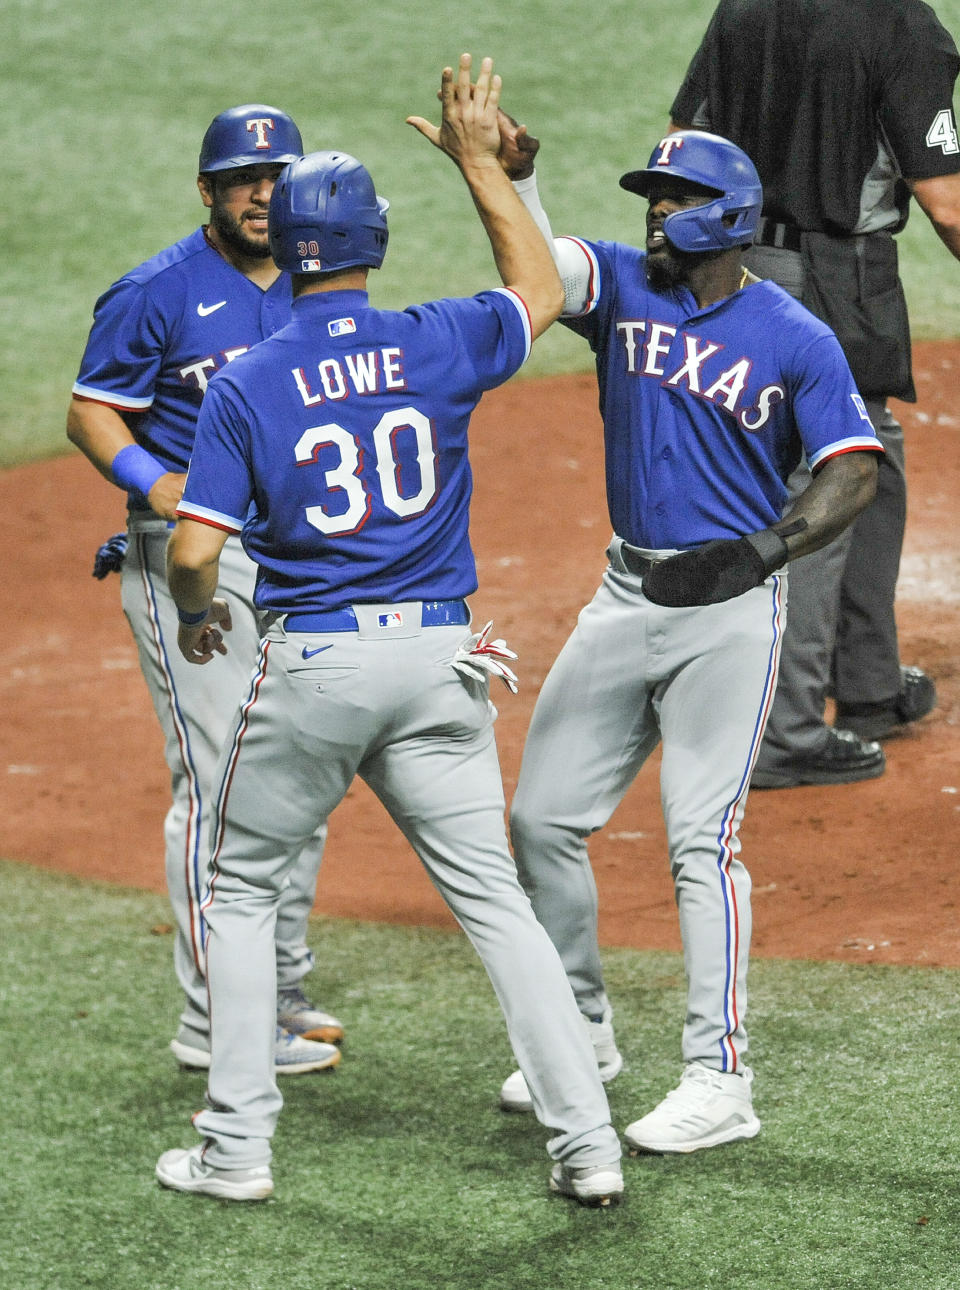 Texas Rangers' Jose Trevino, left, Nate Lowe (30) and Adolis Garcia celebrate after scoring on Nick Solak's bases-loads double off Tampa Bay Rays' Ryan Yarbrough during the fourth inning of a baseball game Tuesday, April 13, 2021, in St. Petersburg, Fla. (AP Photo/Steve Nesius)